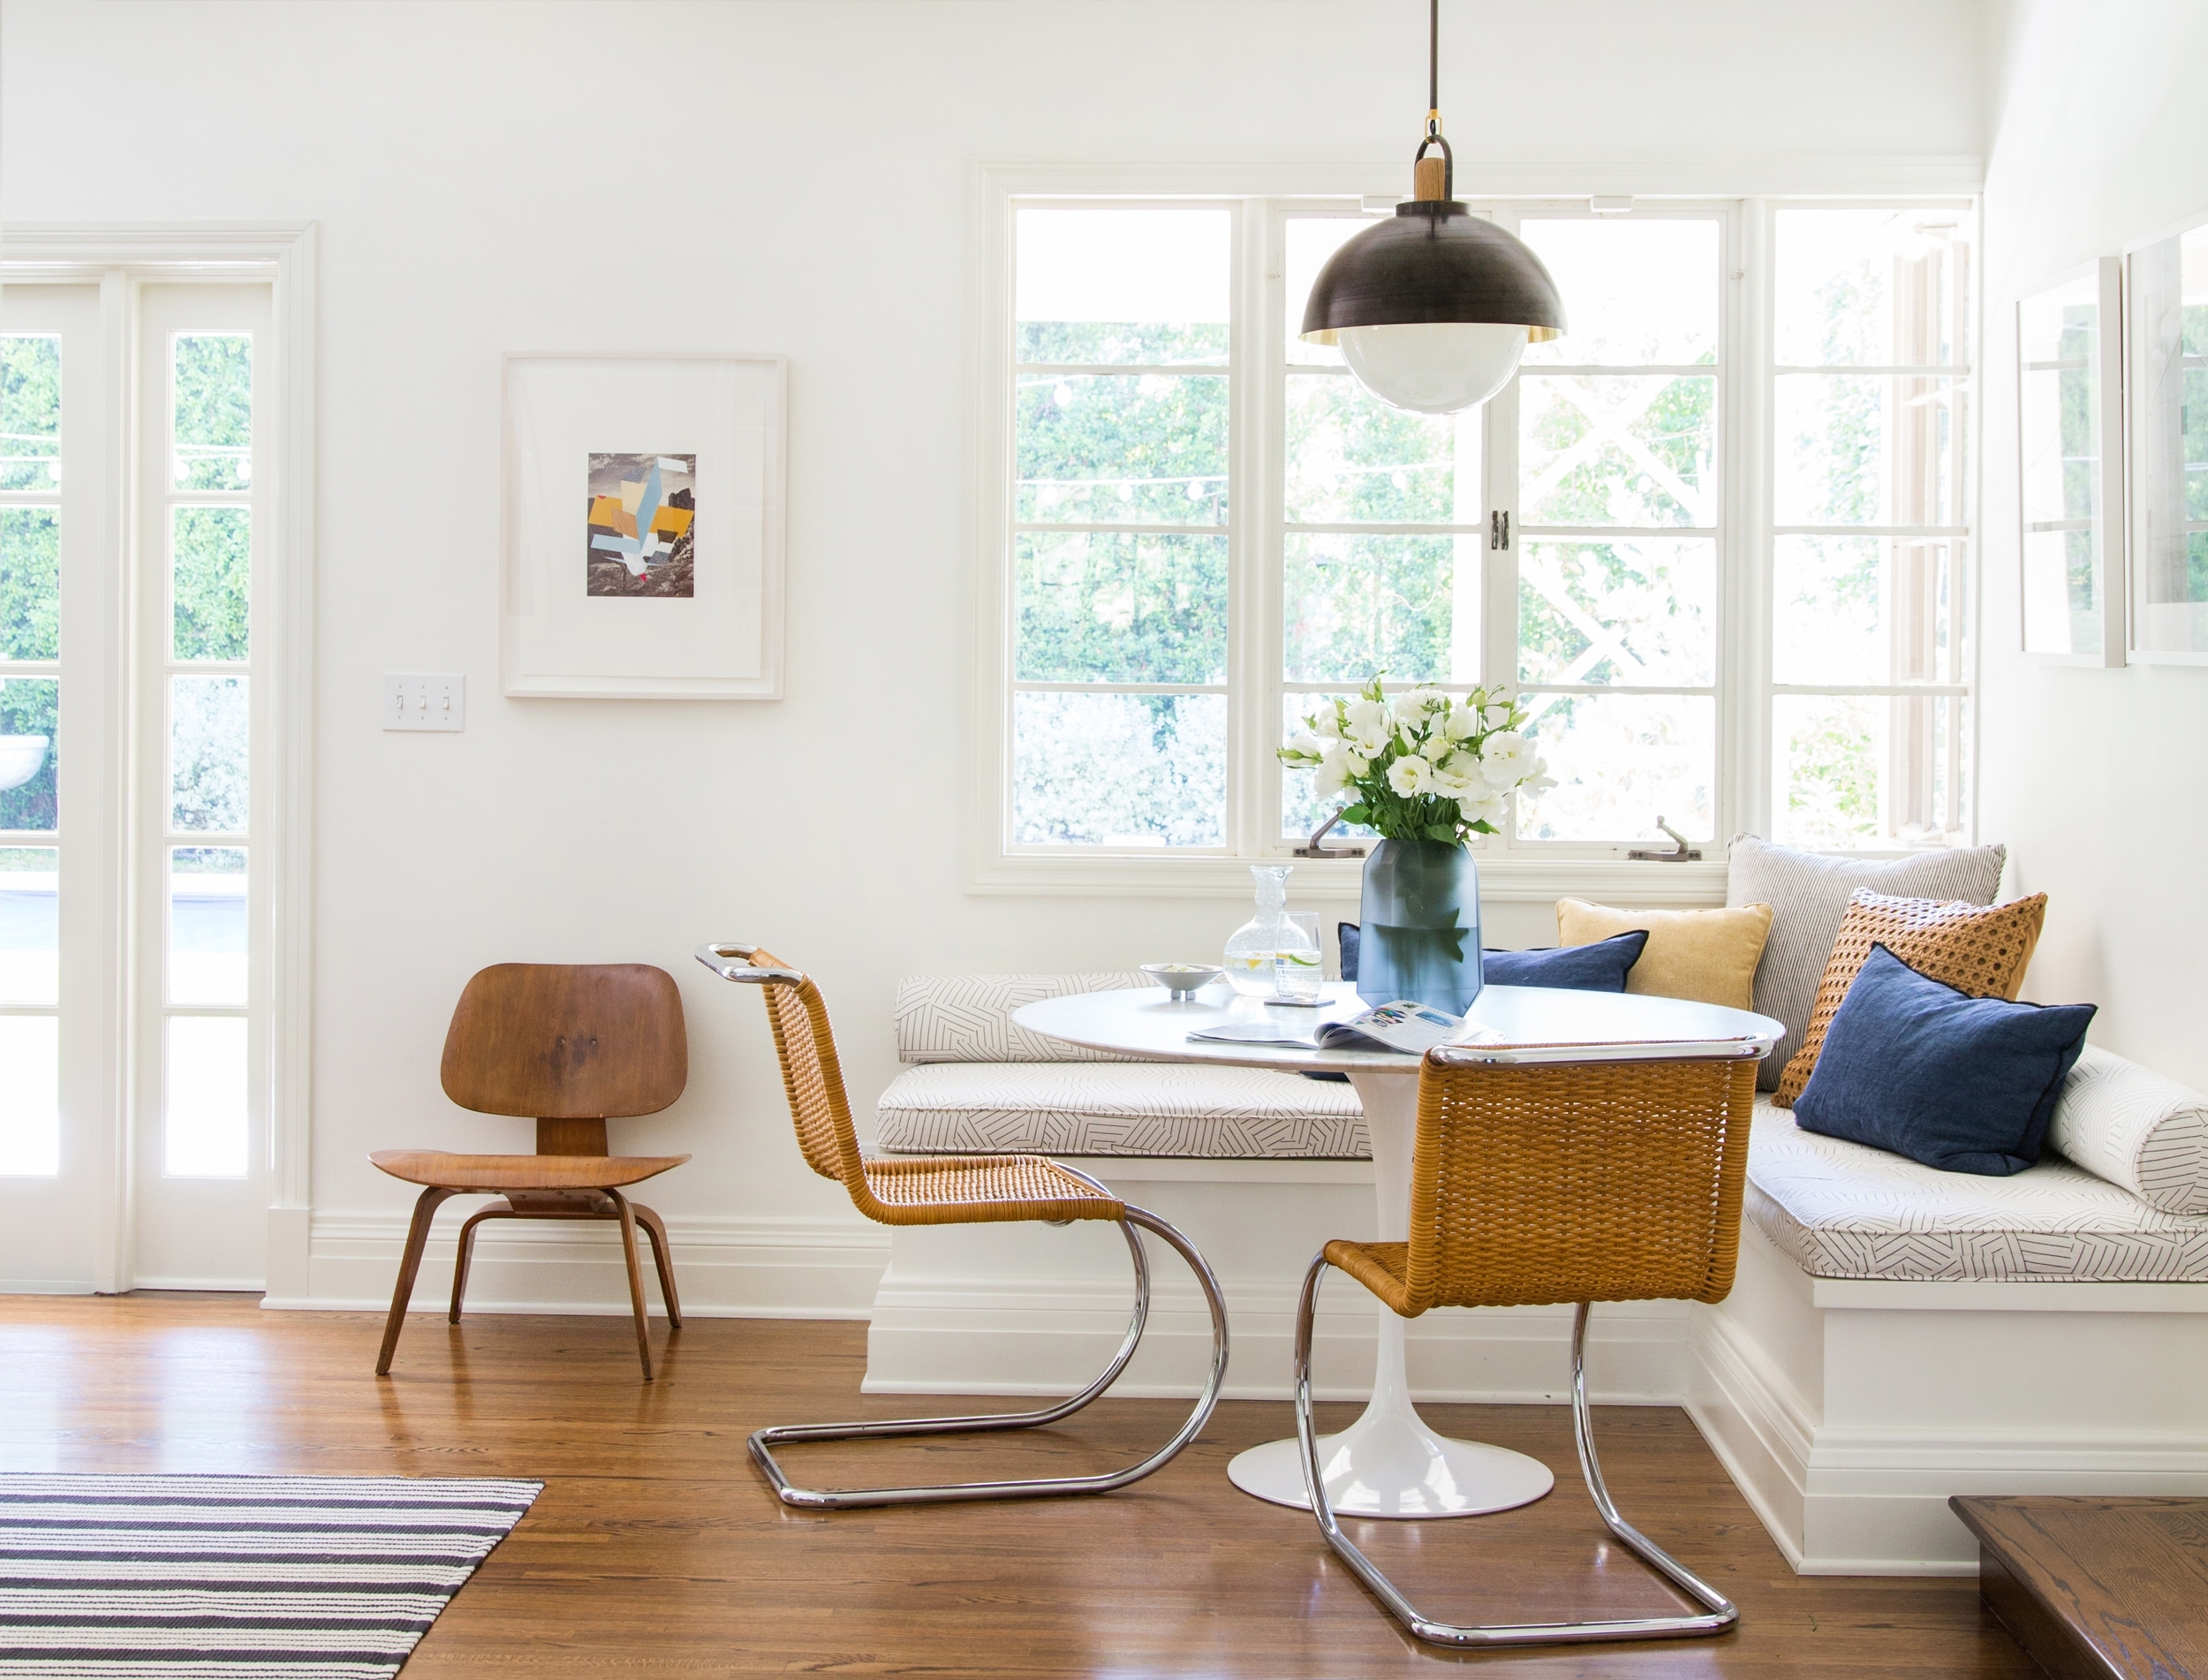 39 Of Our Favorite Accent Chairs Under $500 (+ Rules To Considering Within Most Up To Date Laurent Host Arm Chairs (Gallery 15 of 20)